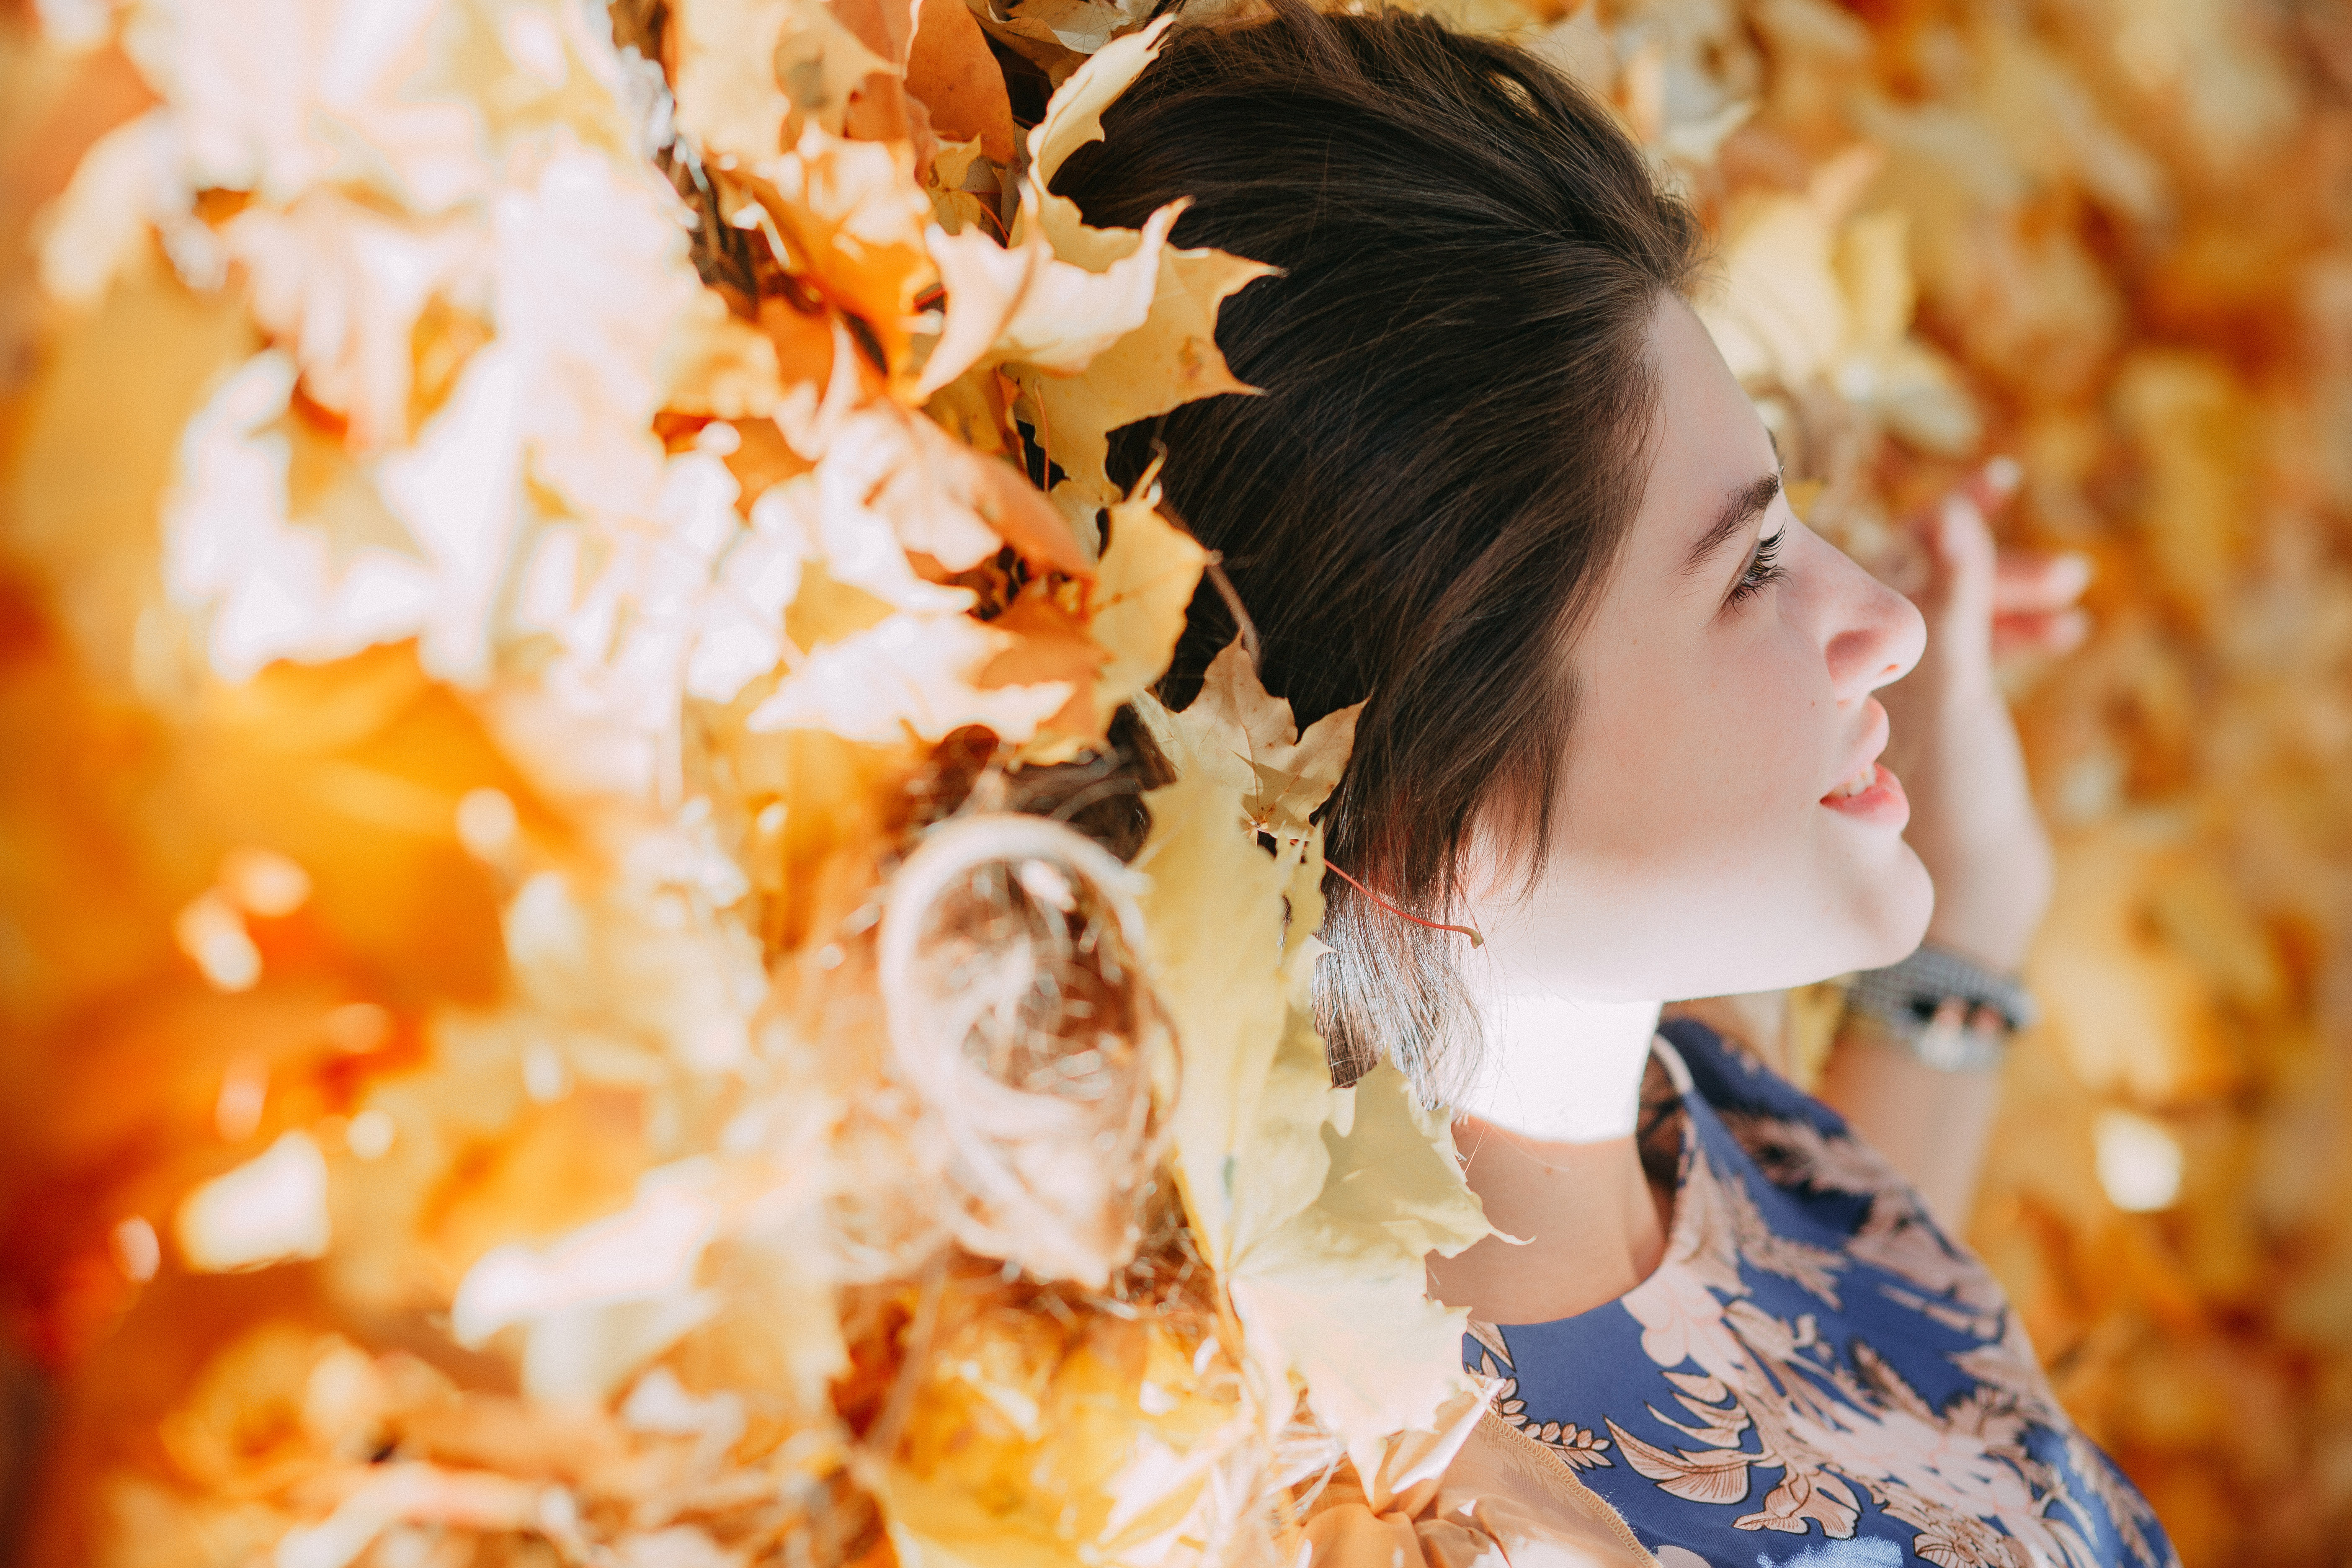 Selective Focus Photo of Woman Lying on Fallen Leaves